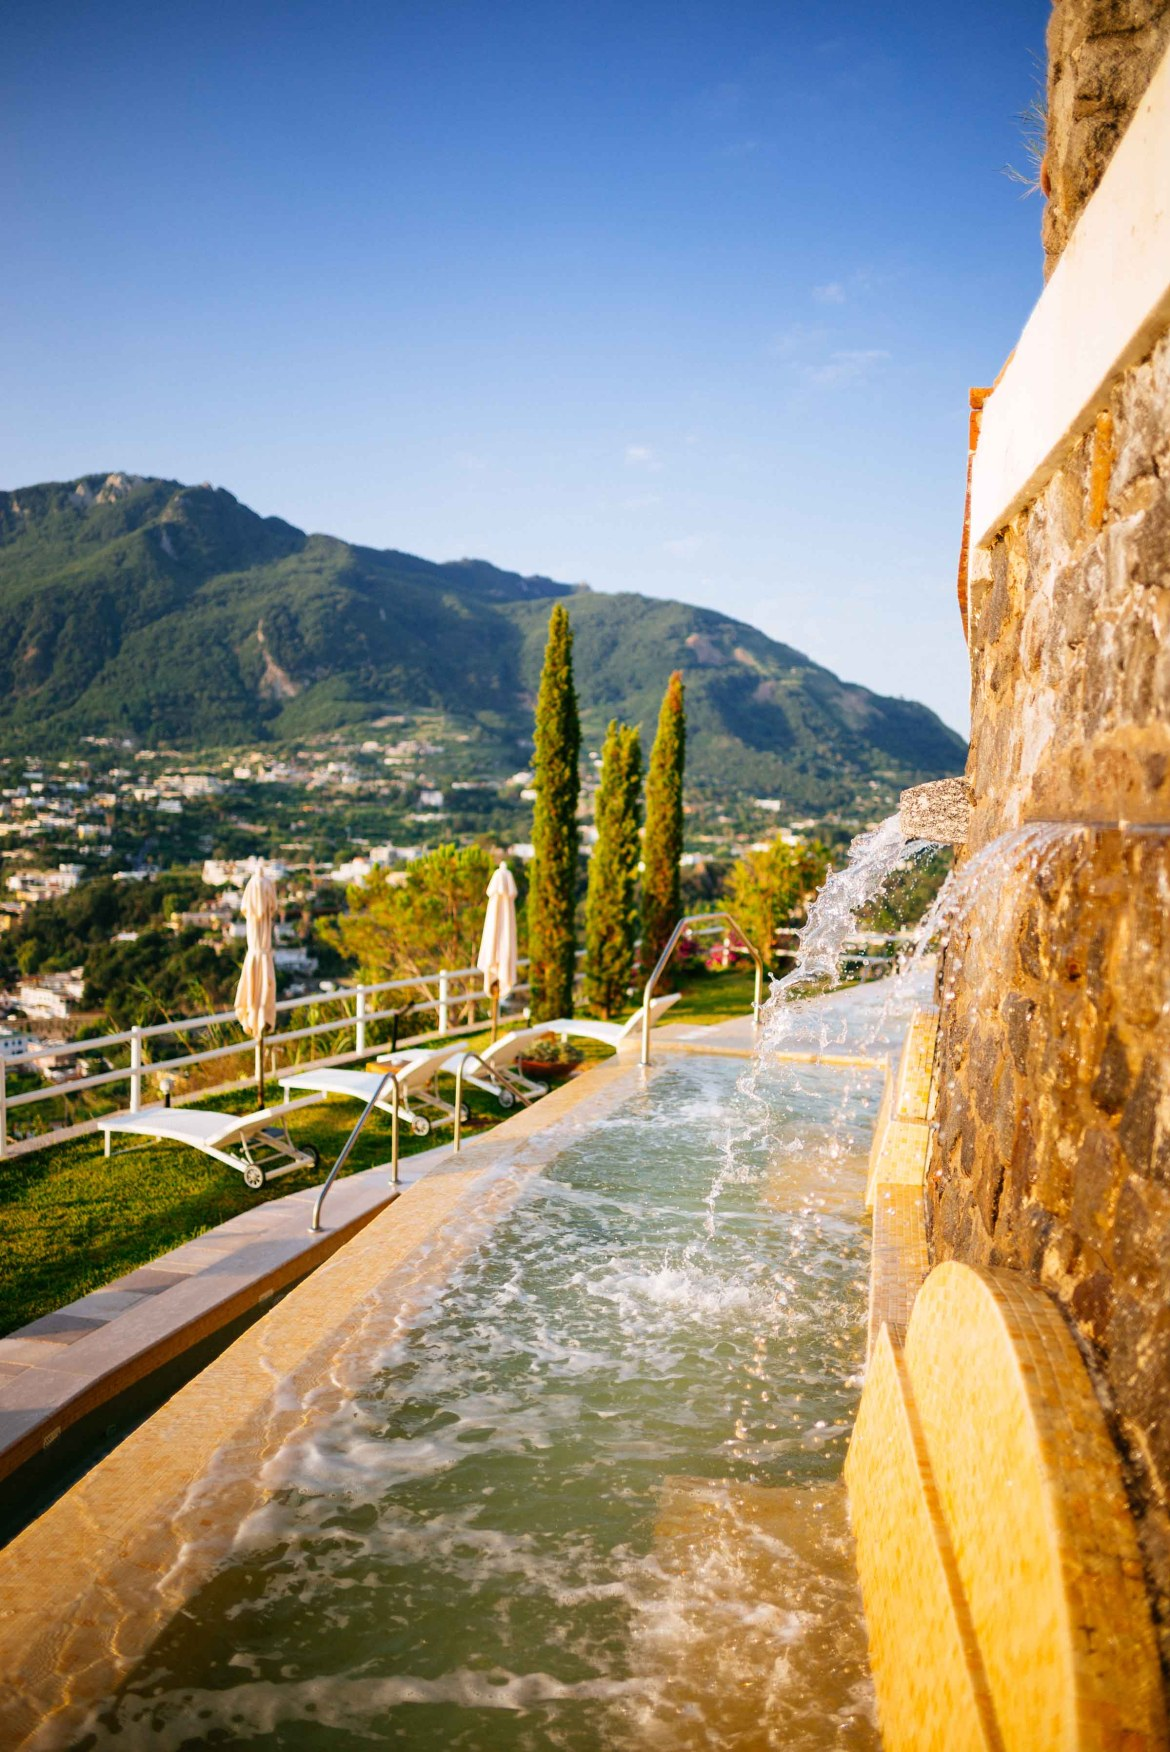 Relax in the many pools of San Montano Resort & Spa   thetasteedit.com #italy #travel #hotel #spa